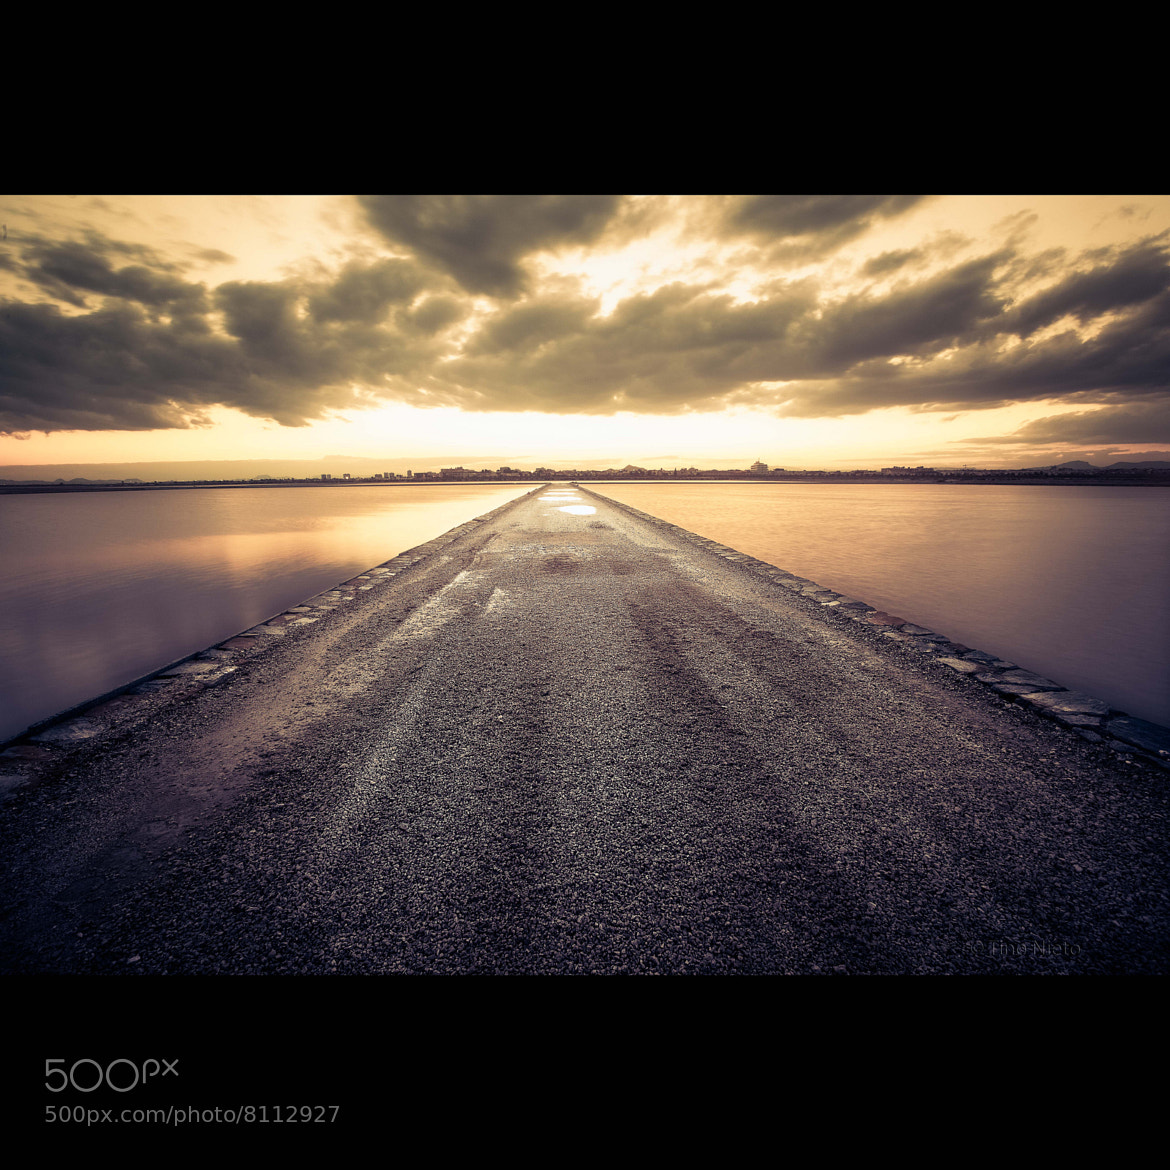 Photograph Carretera sin destino by Tino Nieto on 500px